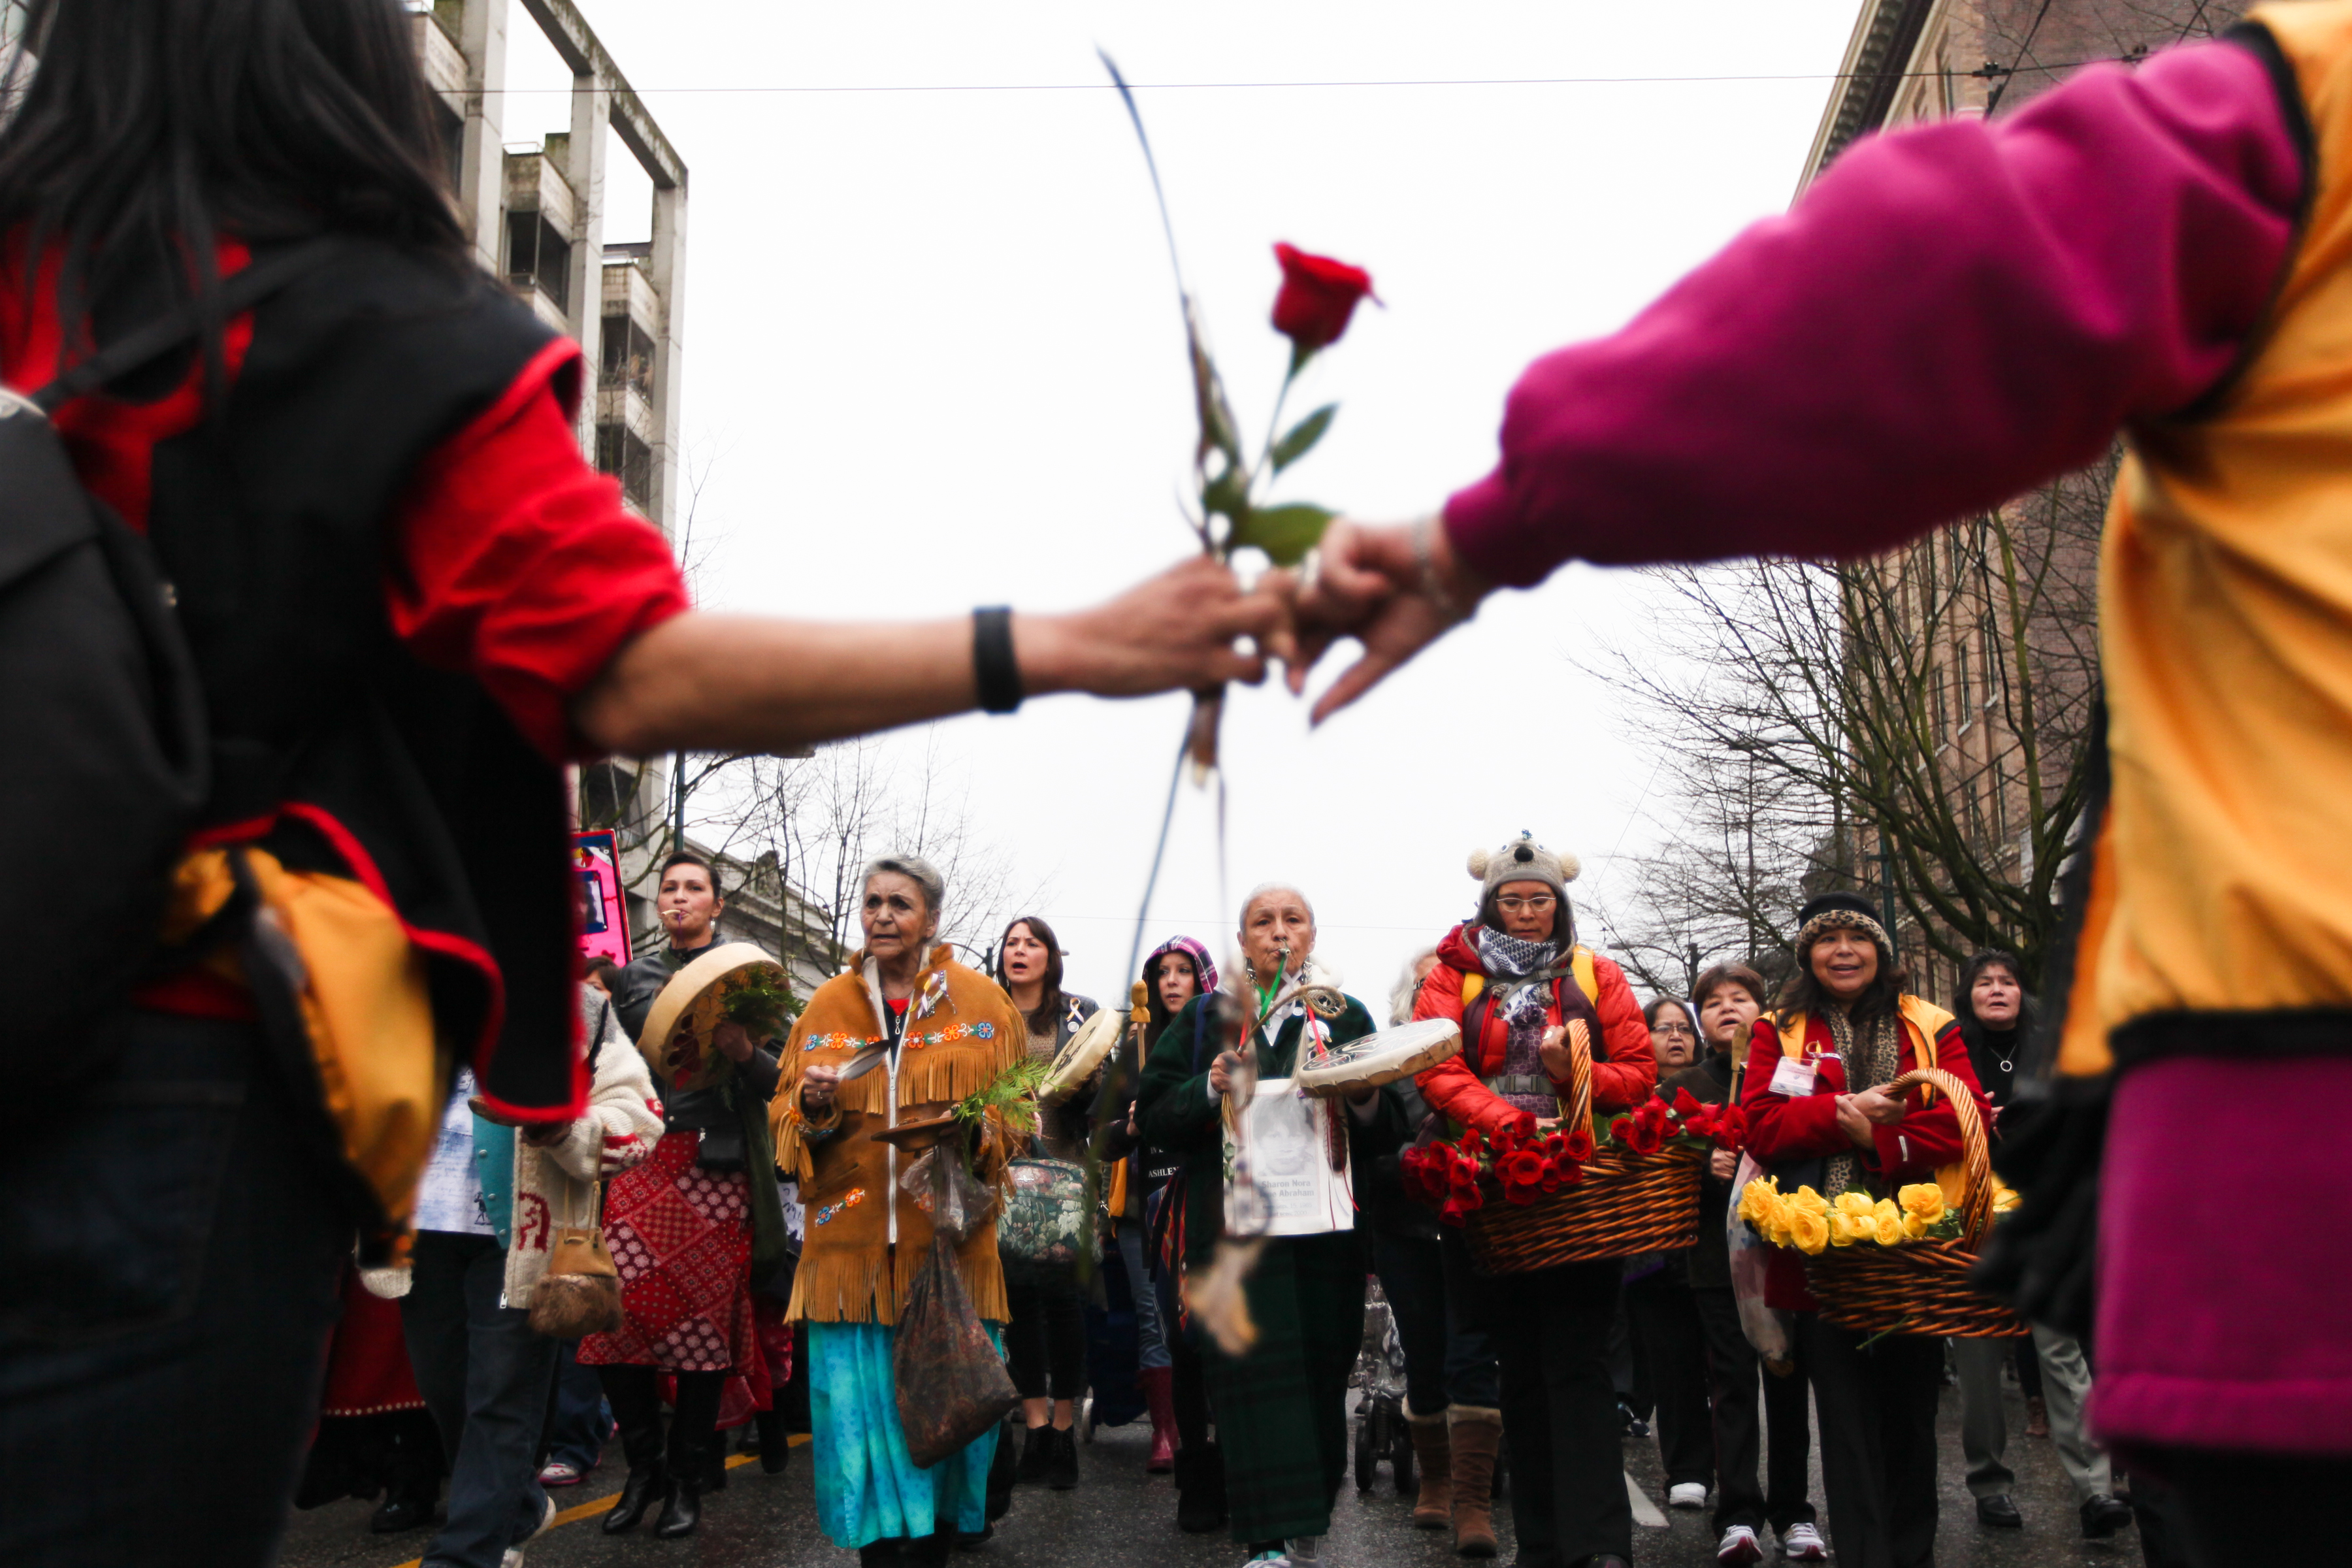 Valentine S Day Women S March Gathers Steam With Human Rights Watch